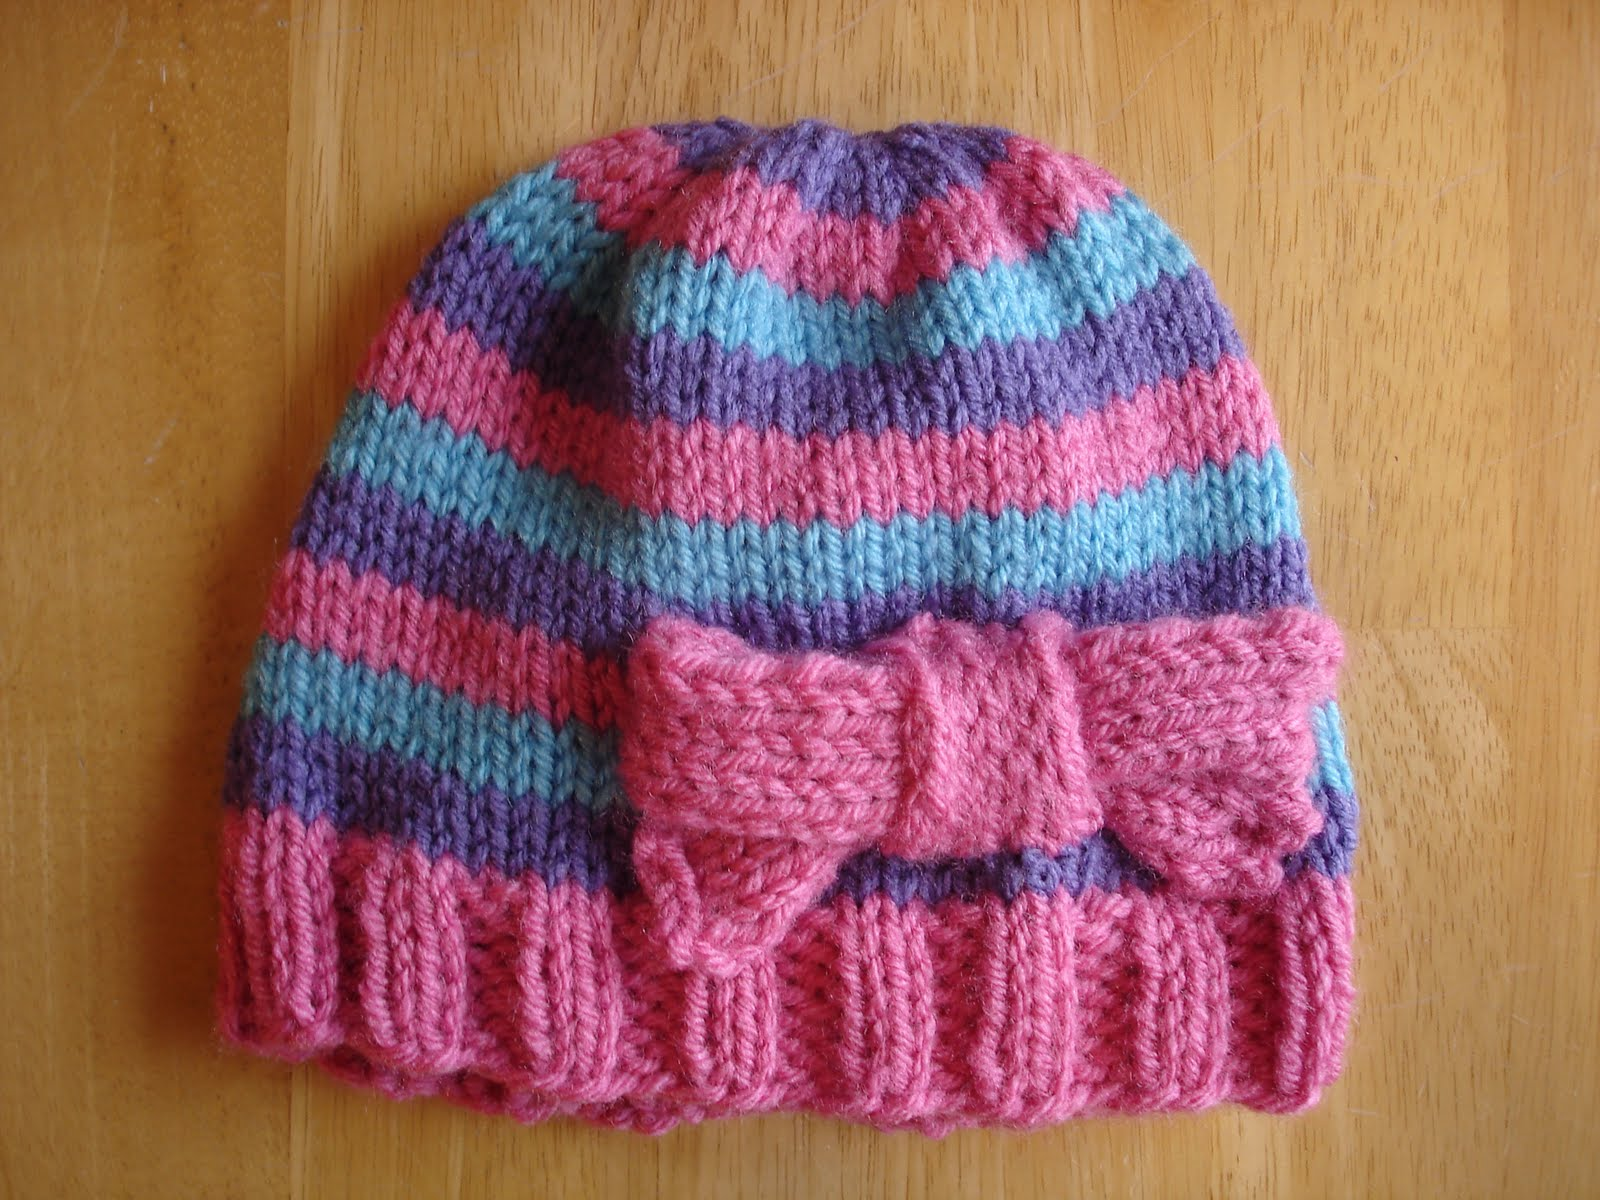 Free Knitting Patterns Hats Search Results Calendar 2015